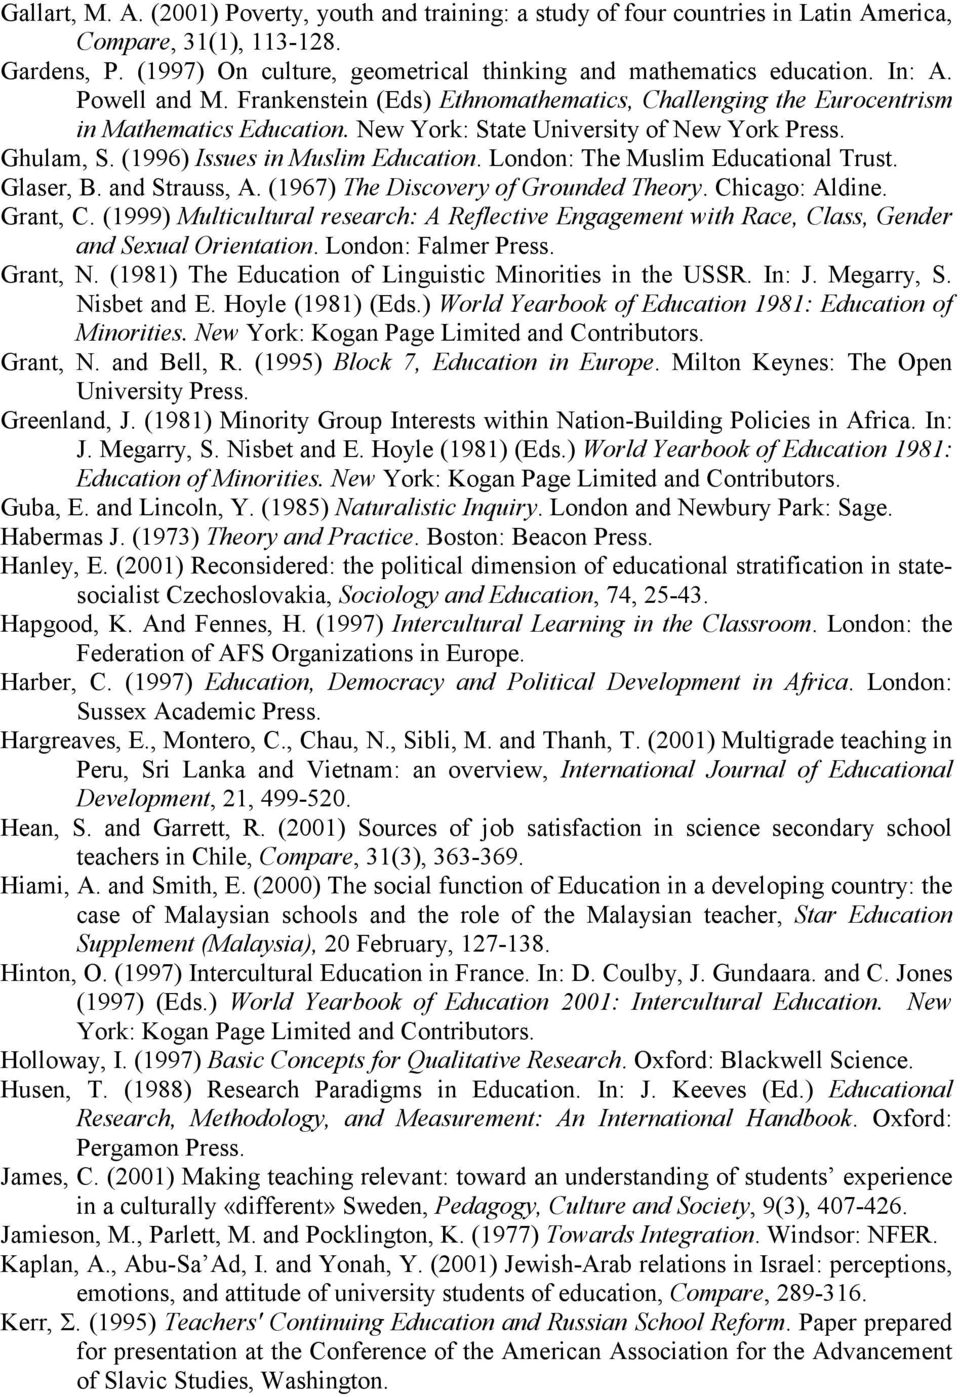 (1996) Issues in Muslim Education. London: The Muslim Educational Trust. Glaser, B. and Strauss, A. (1967) The Discovery of Grounded Theory. Chicago: Aldine. Grant, C.